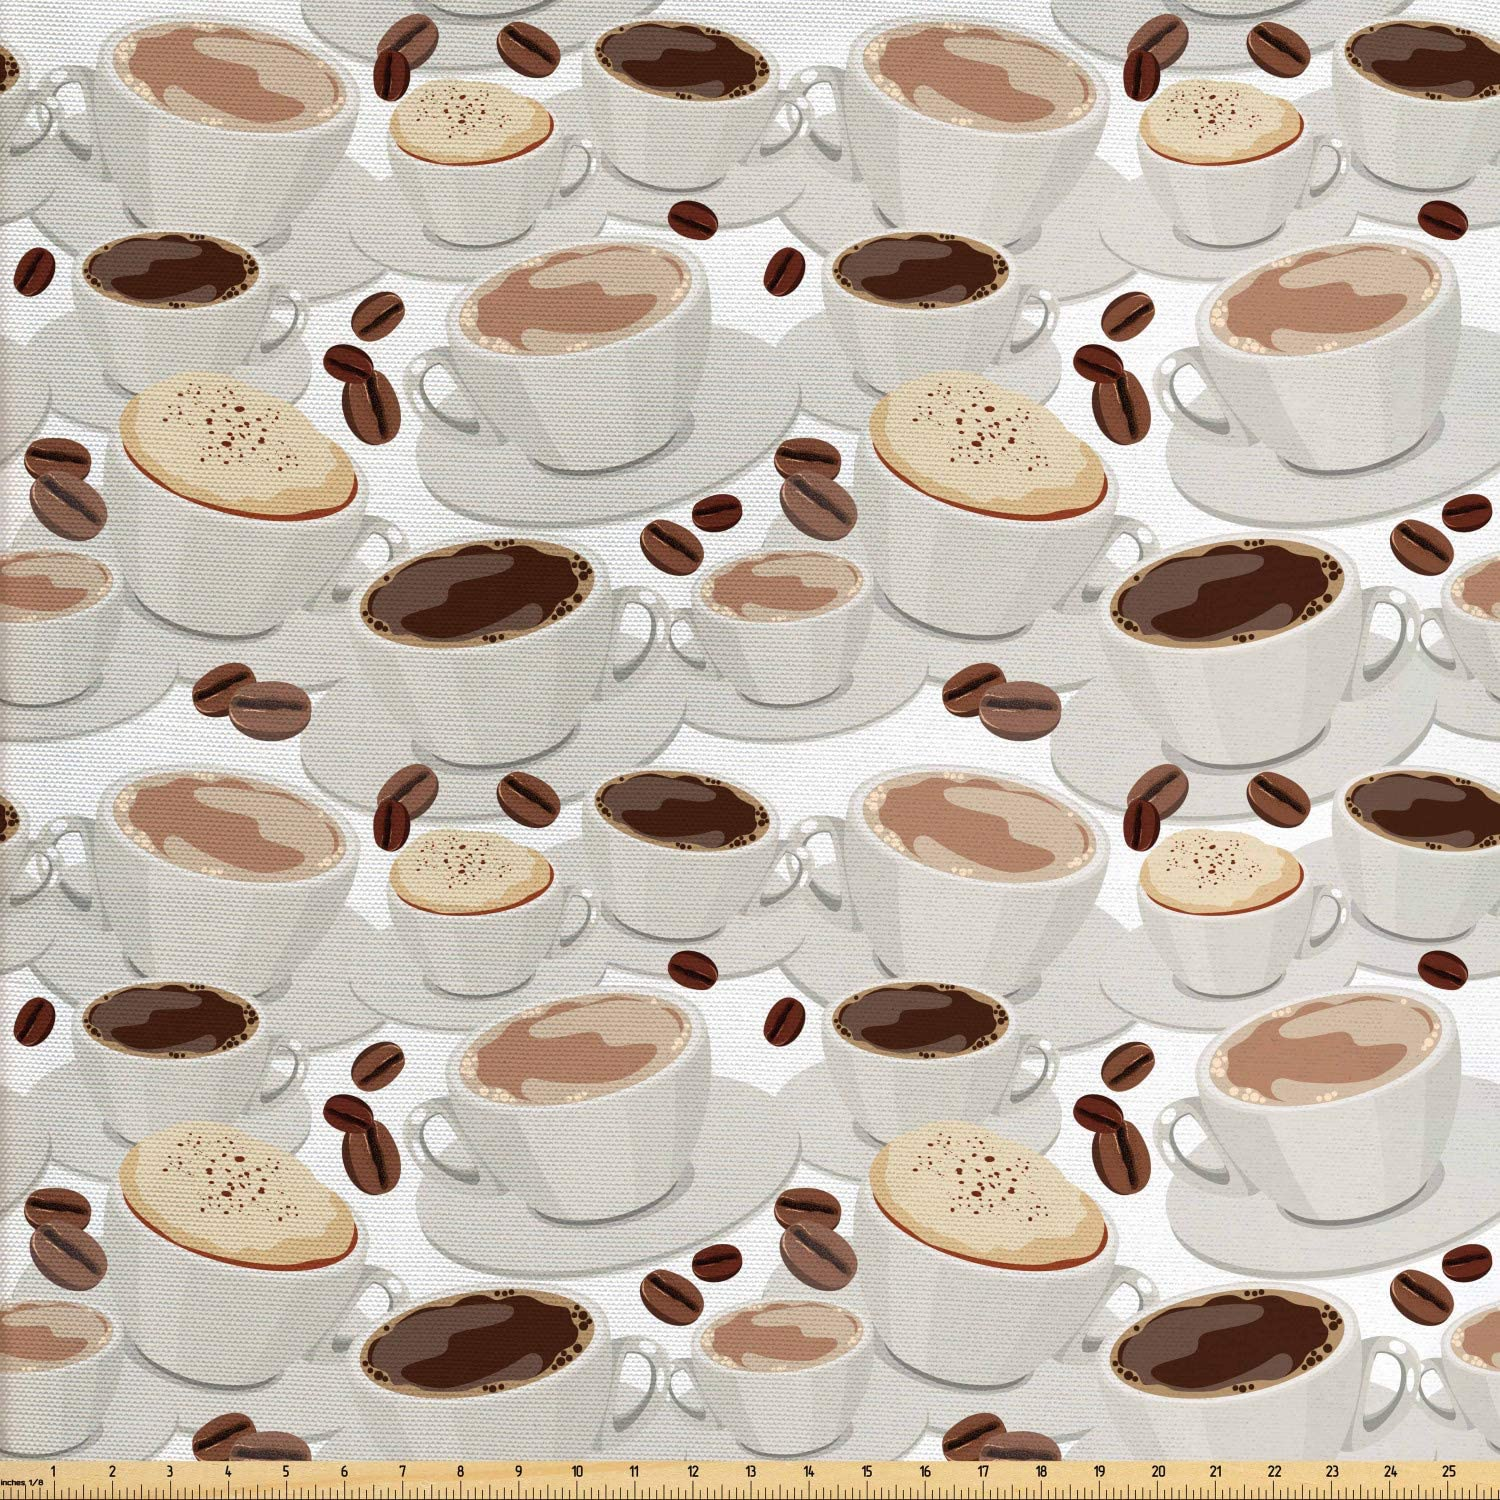 Lunarable Coffee Fabric by The Yard, Cups of Coffee Pattern with Beans Espresso and Cappuccino Drinks Illustration, Decorative Fabric for Upholstery and Home Accents, 3 Yards, White Beige